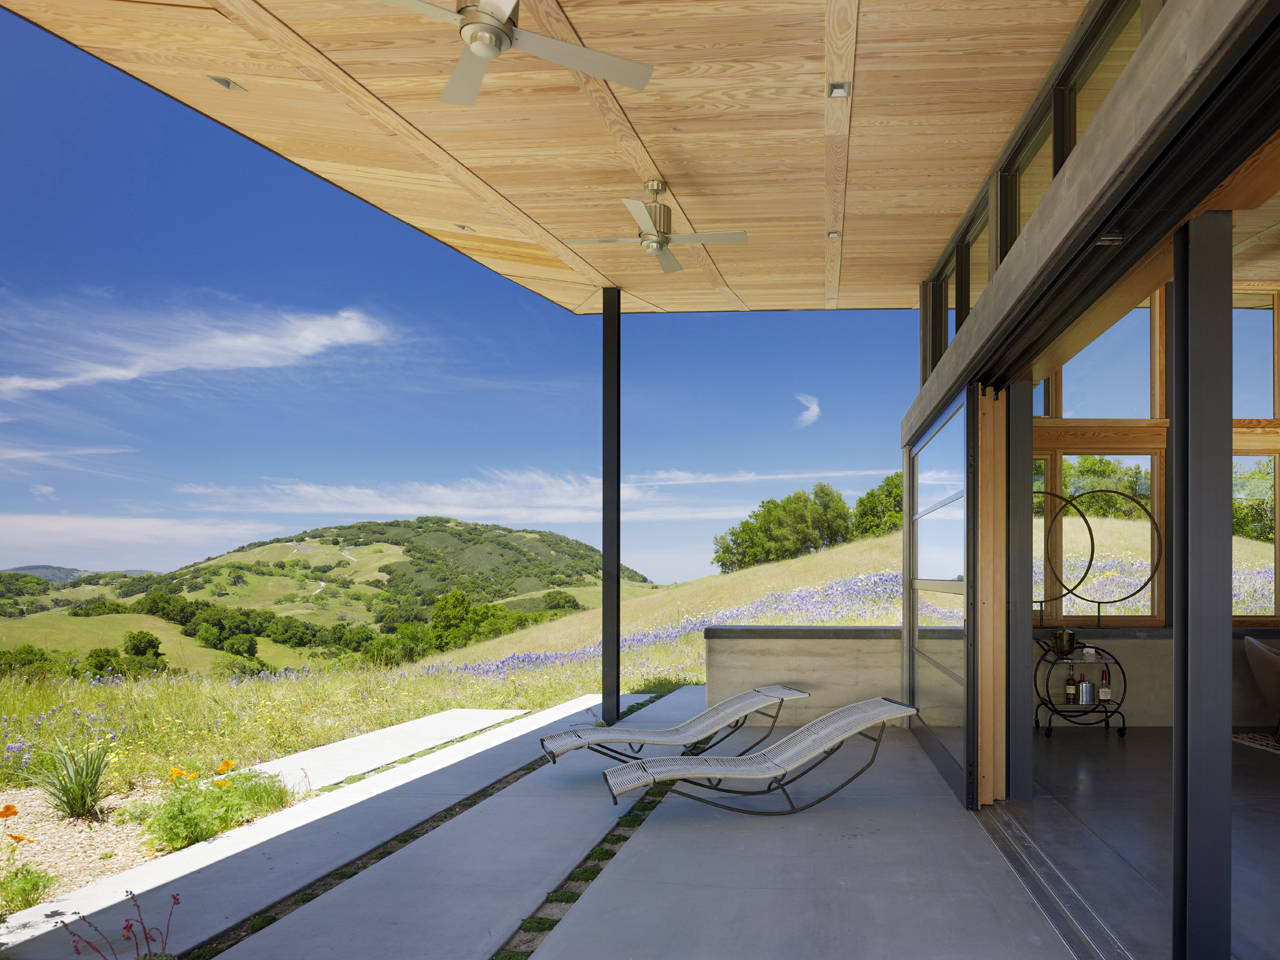 Terrace, Hill Views, Caterpillar House in Carmel, California by Feldman Architecture